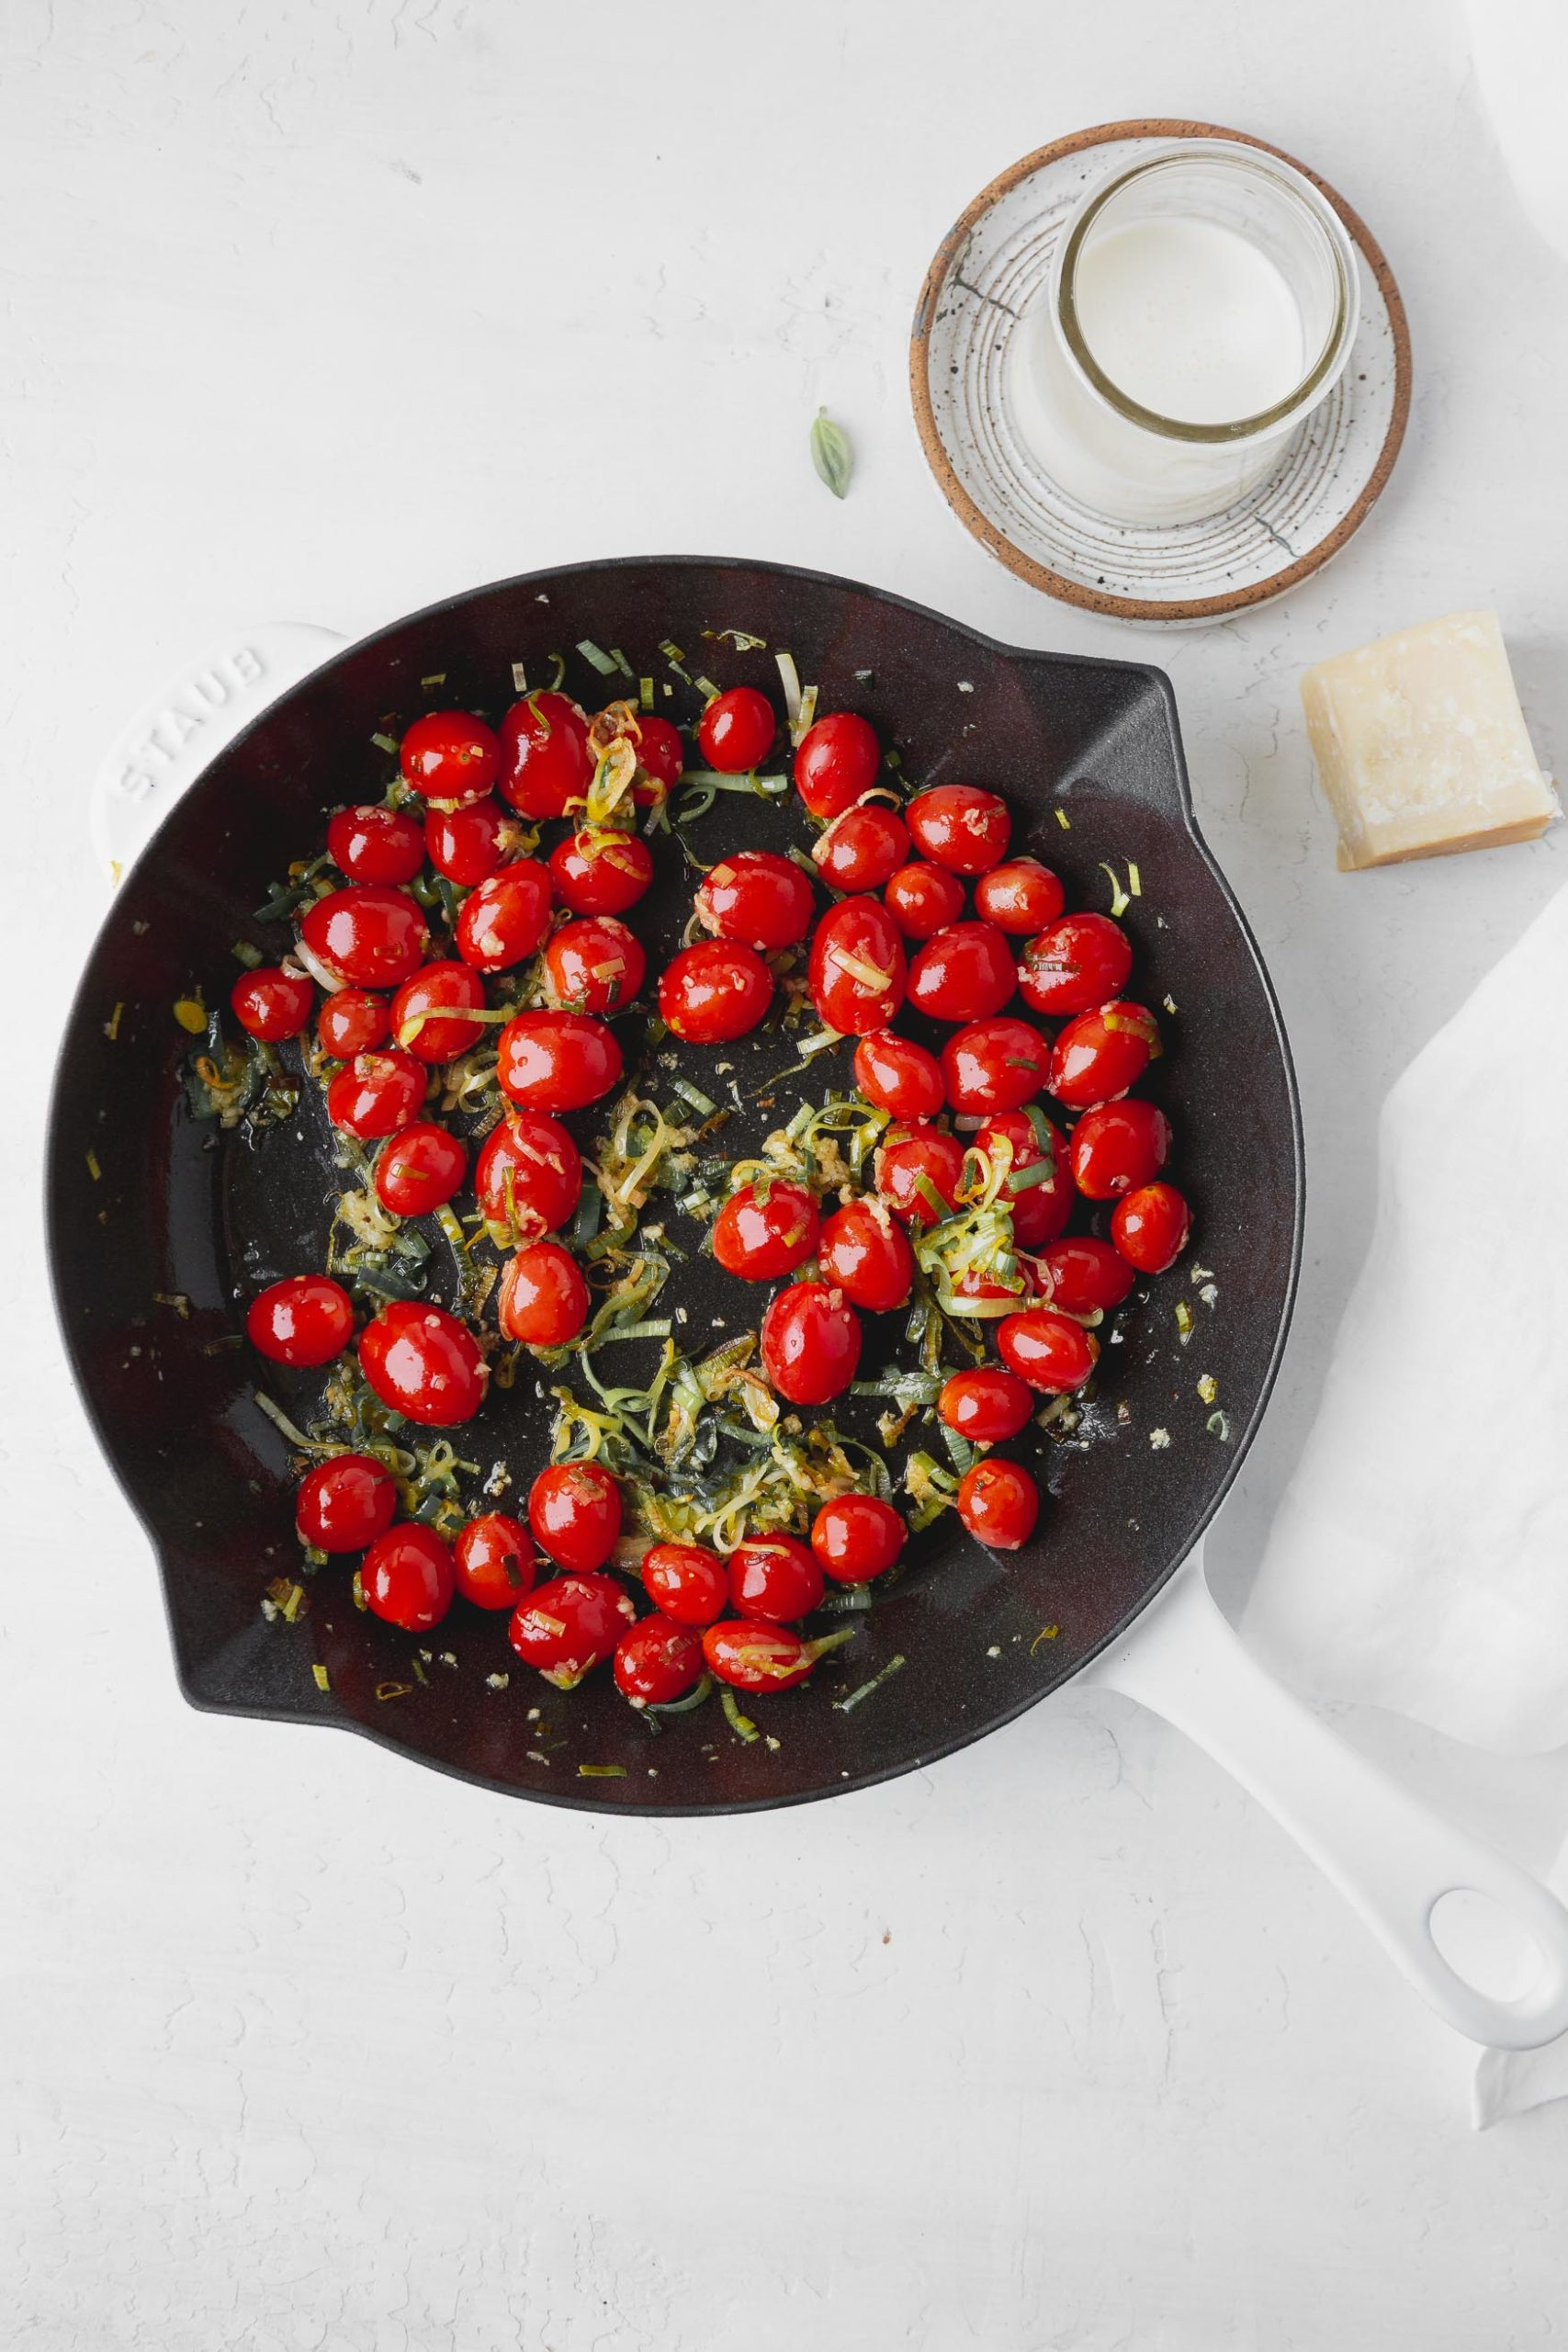 A photo of a skillet with fresh cherry tomatoes and sliced leeks all ready to cook.